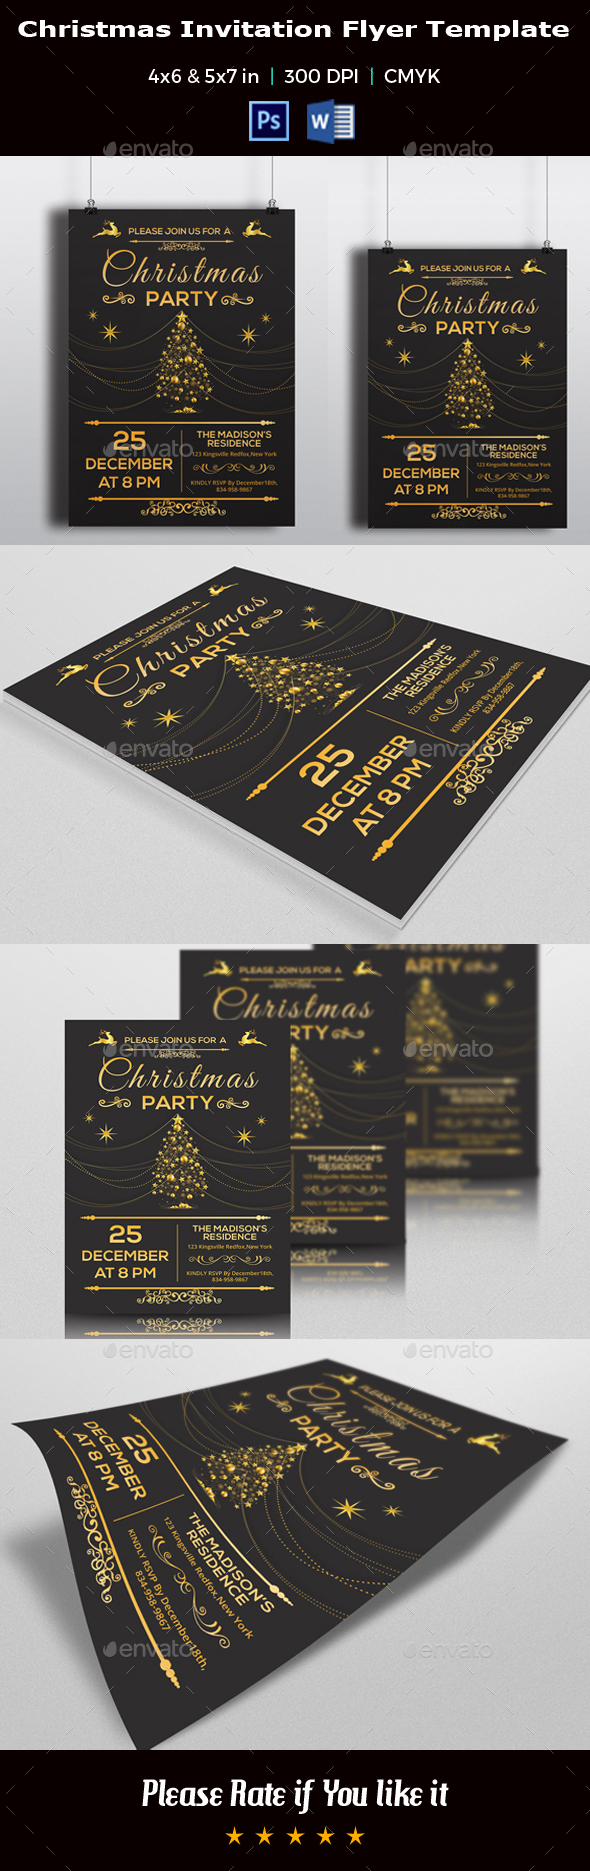 Christmas Invitation Flyer Template V02 - Events Flyers